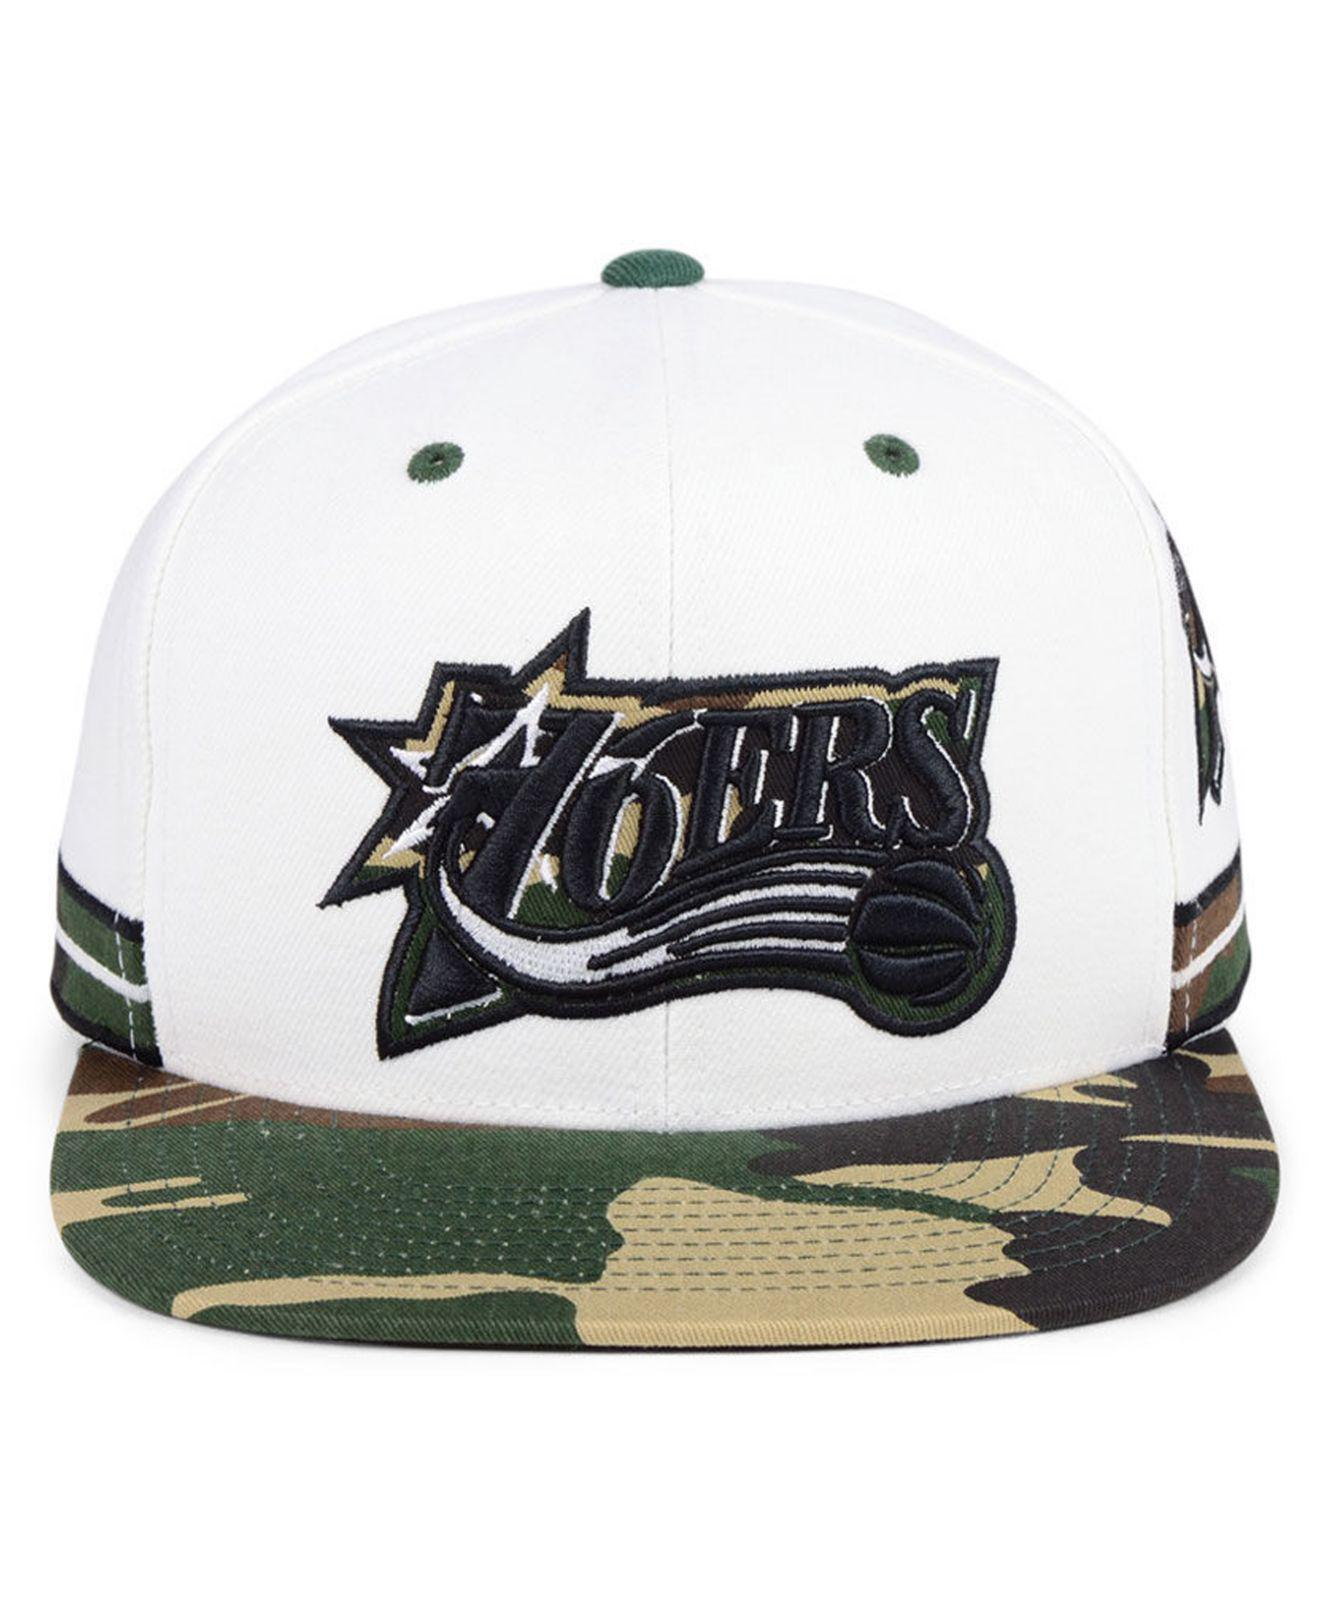 4a4713b6f0a72 ... order lyst mitchell ness philadelphia 76ers straight fire camo hook snapback  cap in white for men